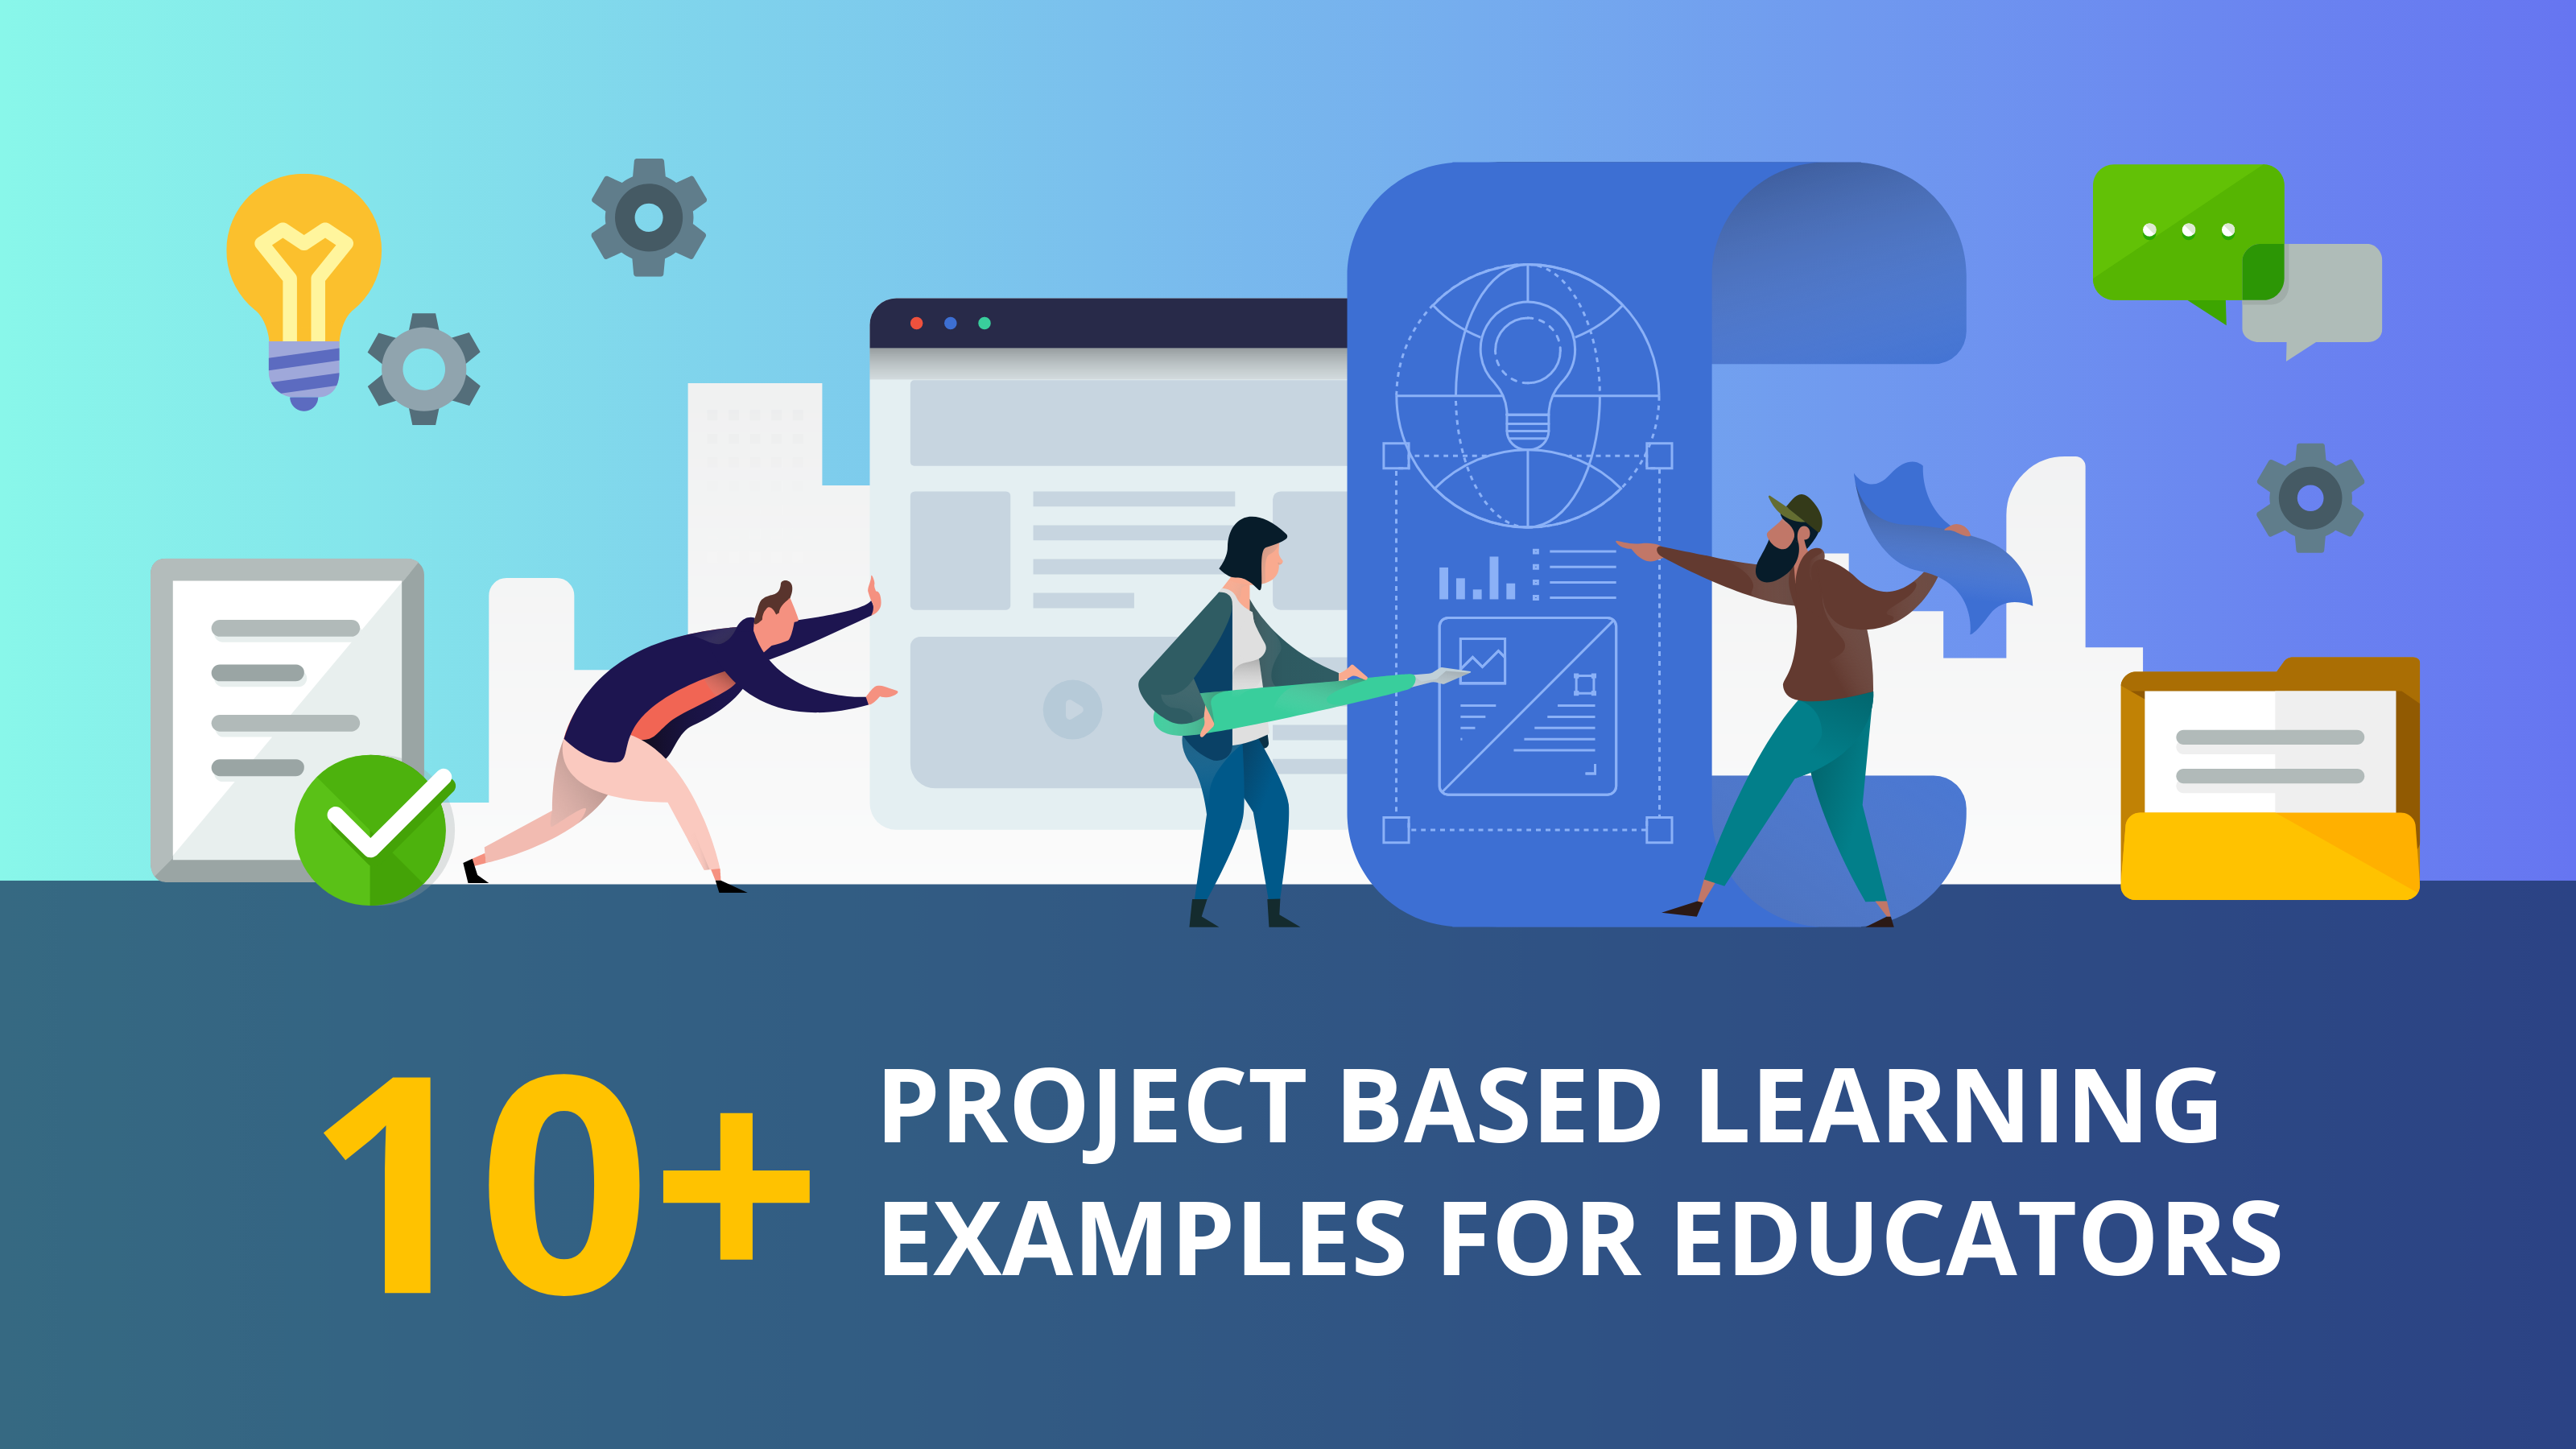 10+ Project Based Learning Examples for Educators